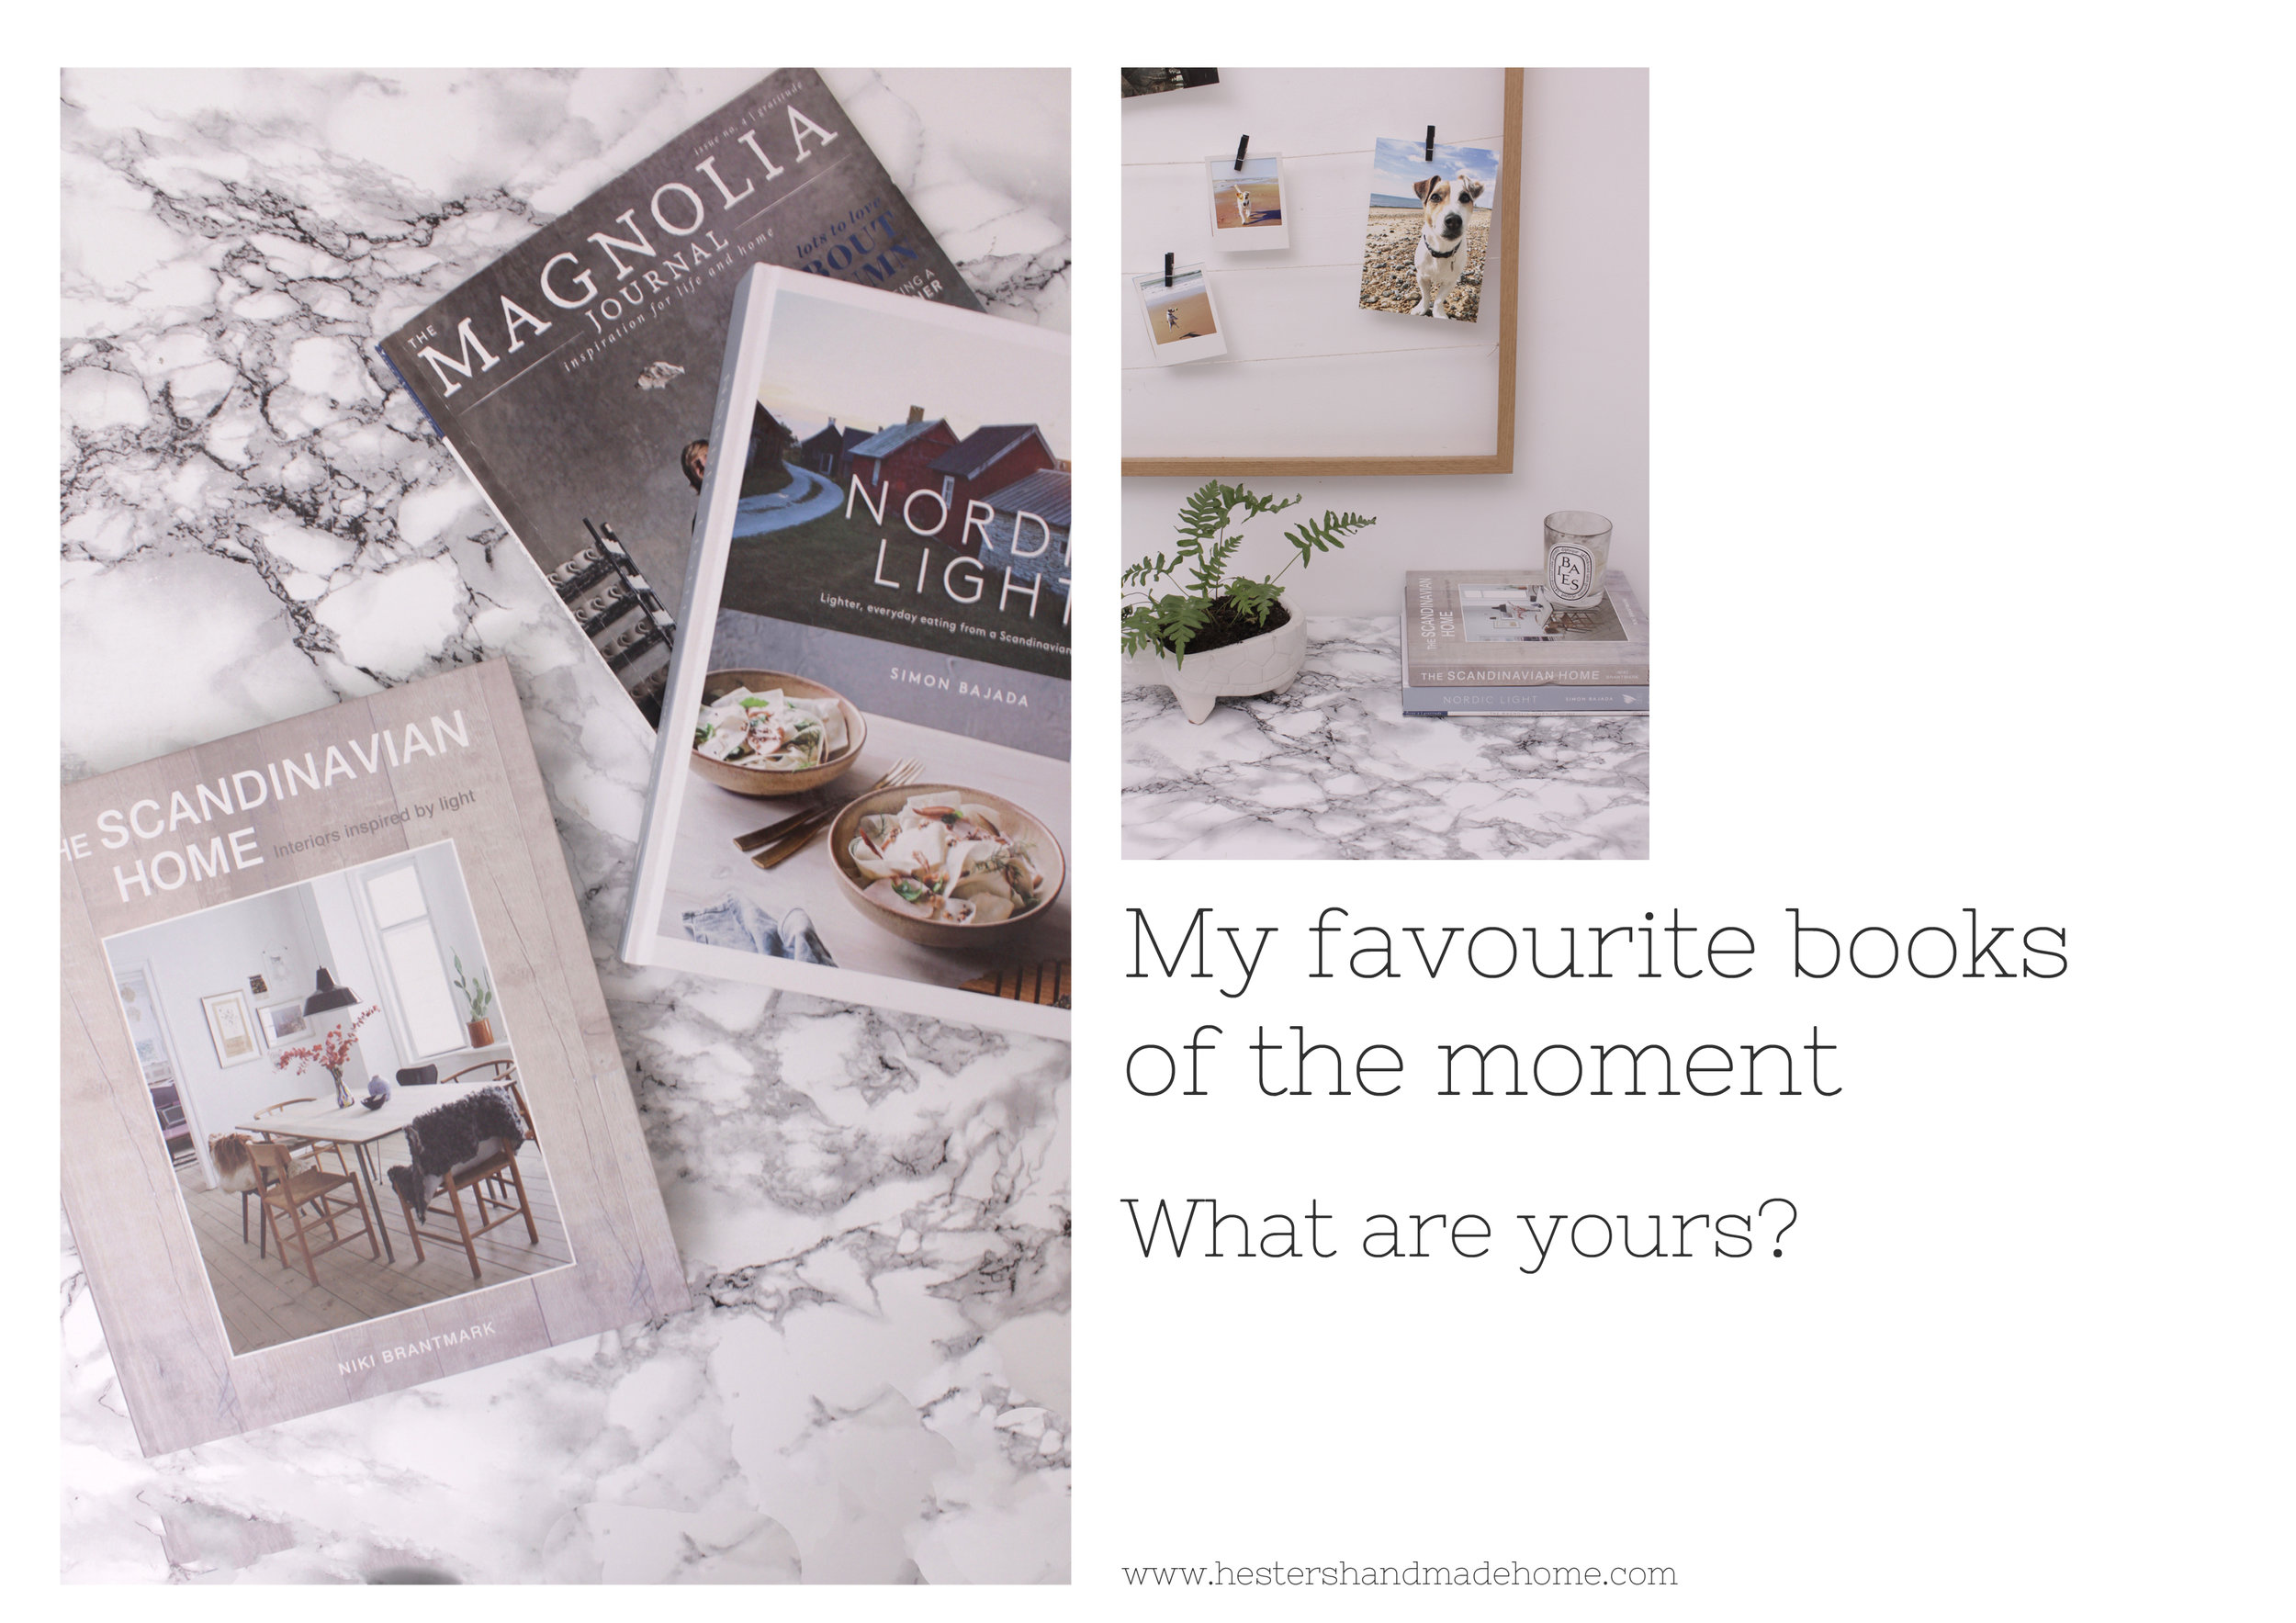 My favourite books by www.hestershandmadehome.com